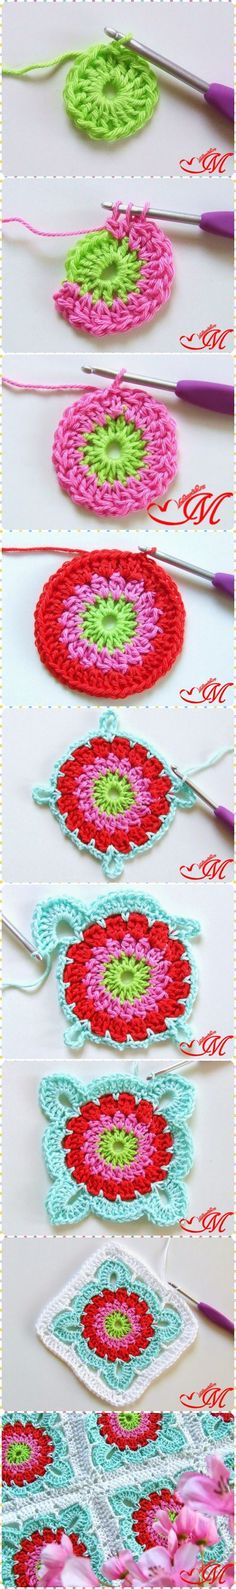 How to Crochet Granny Square Blanket How to Crochet Pretty Granny Square Blanke. How to Crochet Granny Square Blanket How to Crochet Pretty Granny Square Blanket with Free Pattern Crochet Blocks, Granny Square Crochet Pattern, Crochet Flower Patterns, Crochet Squares, Crochet Flowers, Crochet Granny, Granny Squares, Blanket Crochet, Crochet Daisy